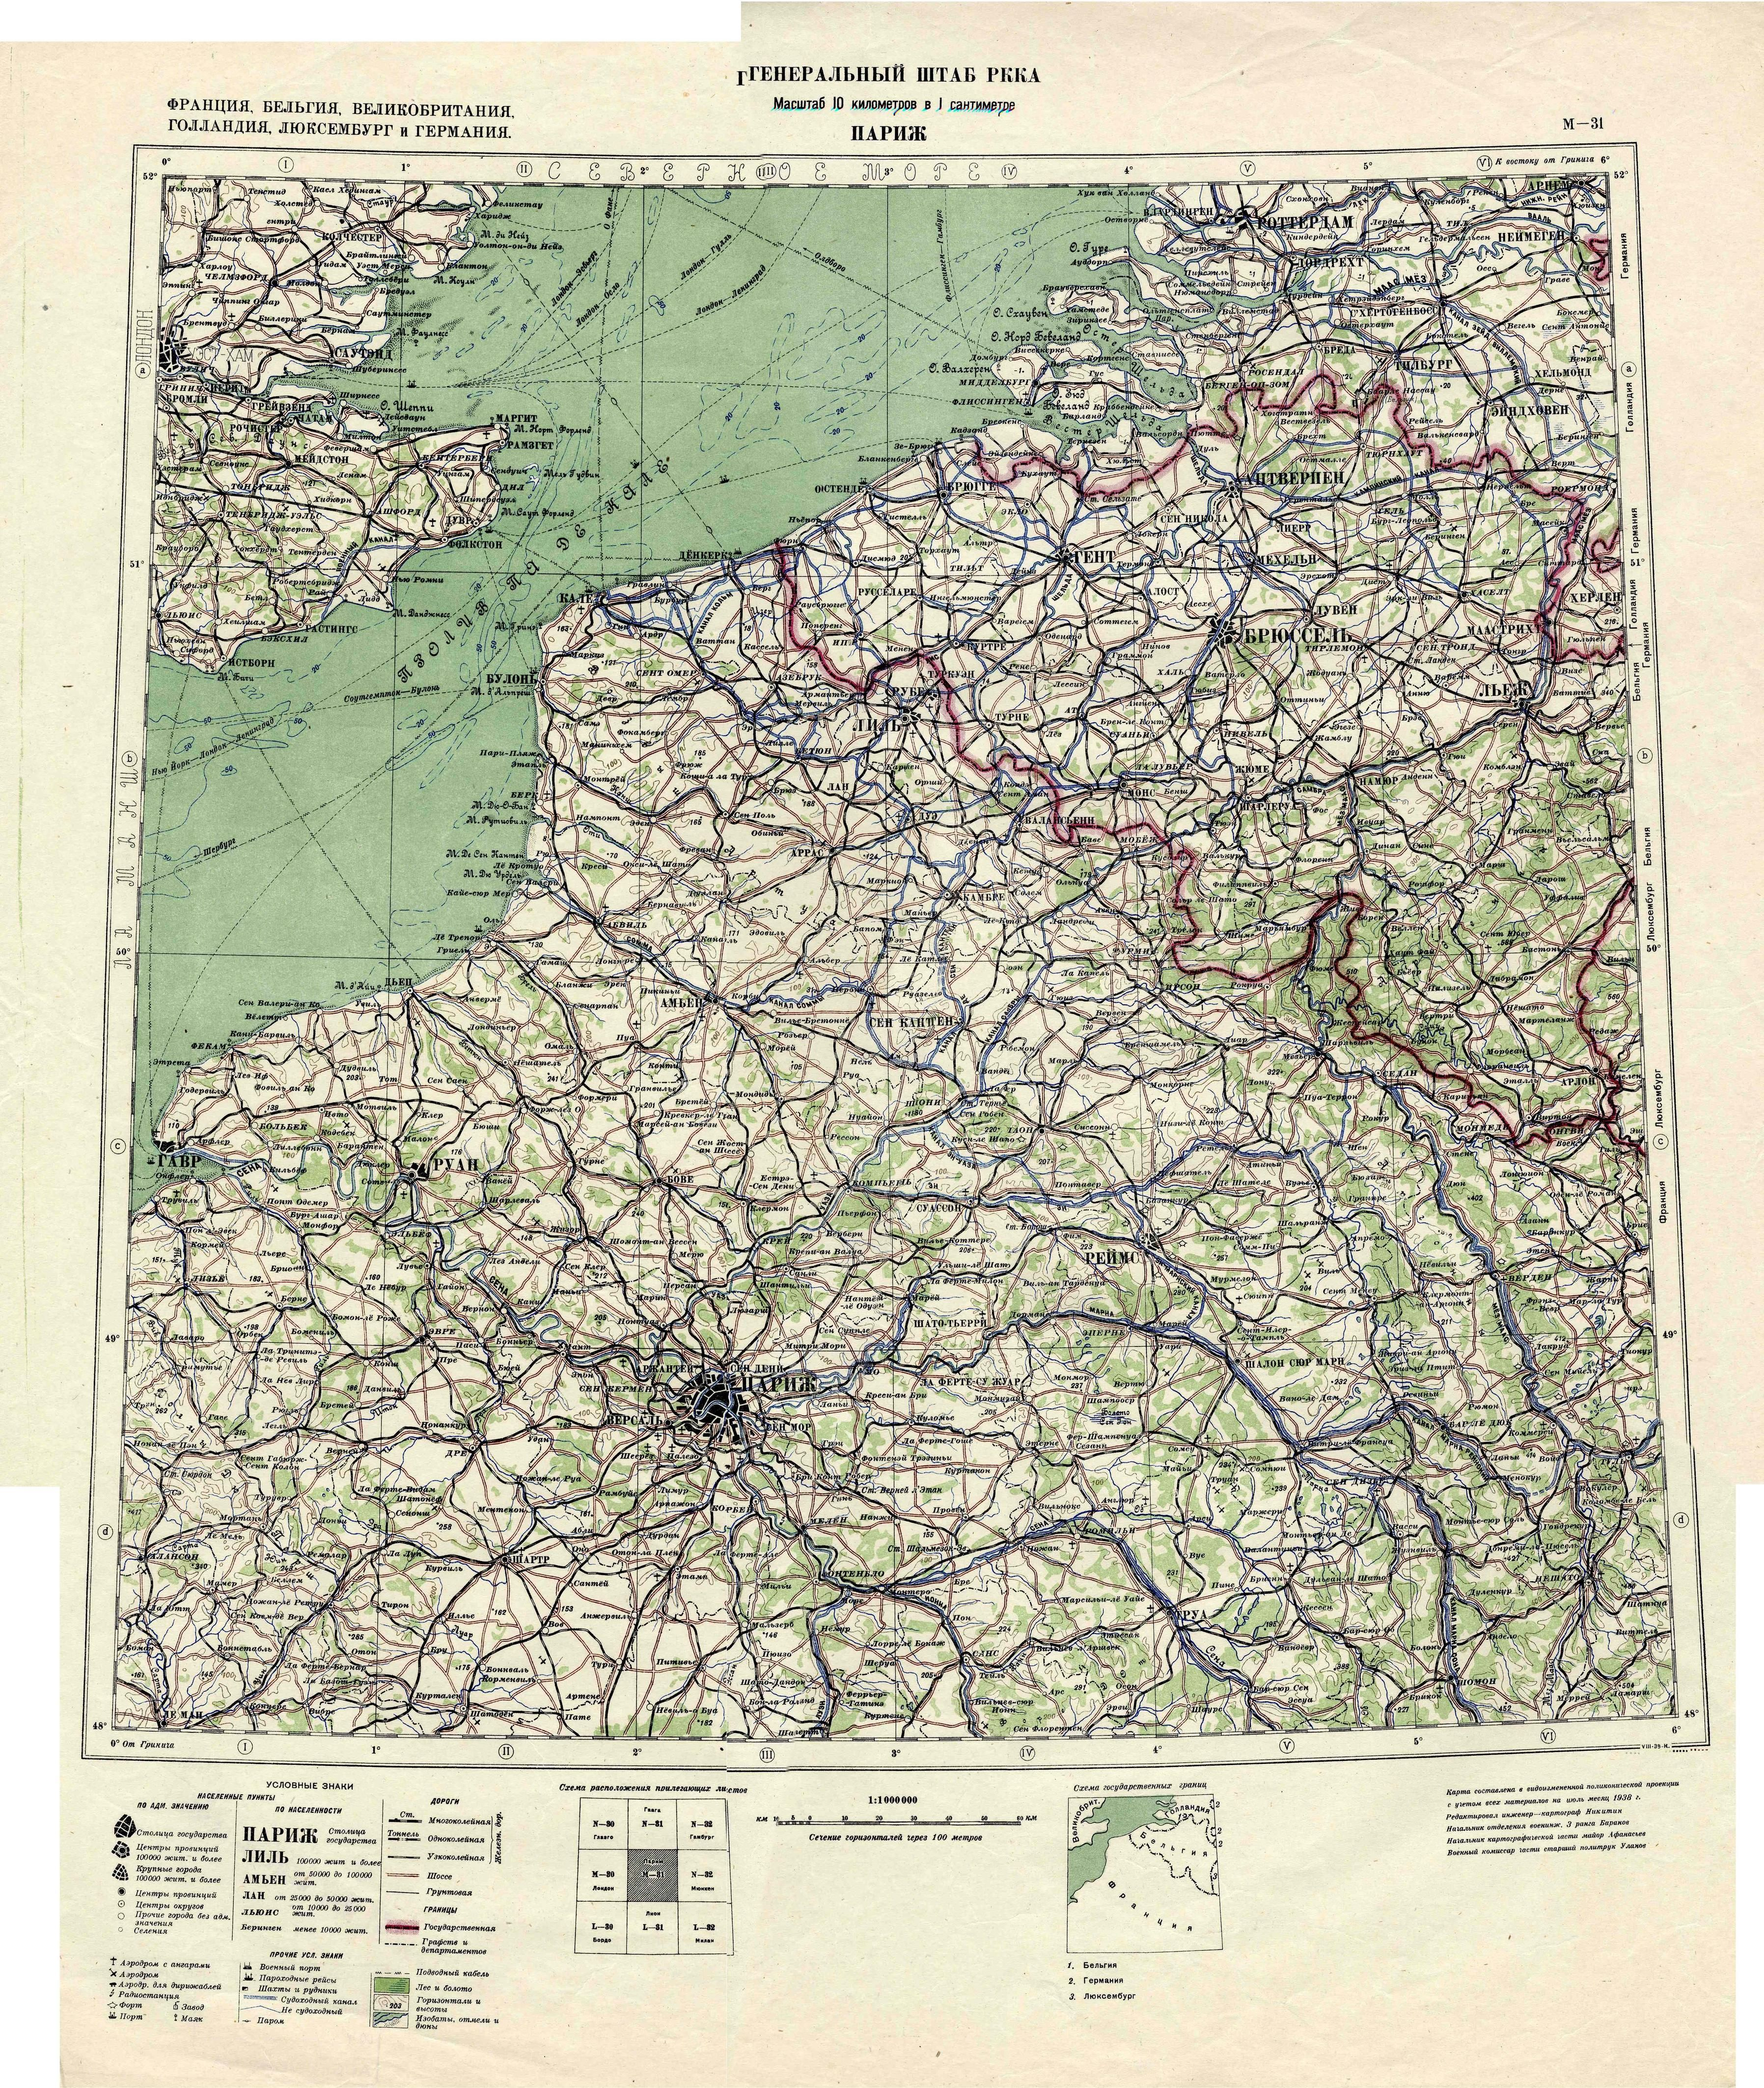 Belgium Topographic Map.1938 Soviet Topographic Map Of Northeastern France Belgium And The